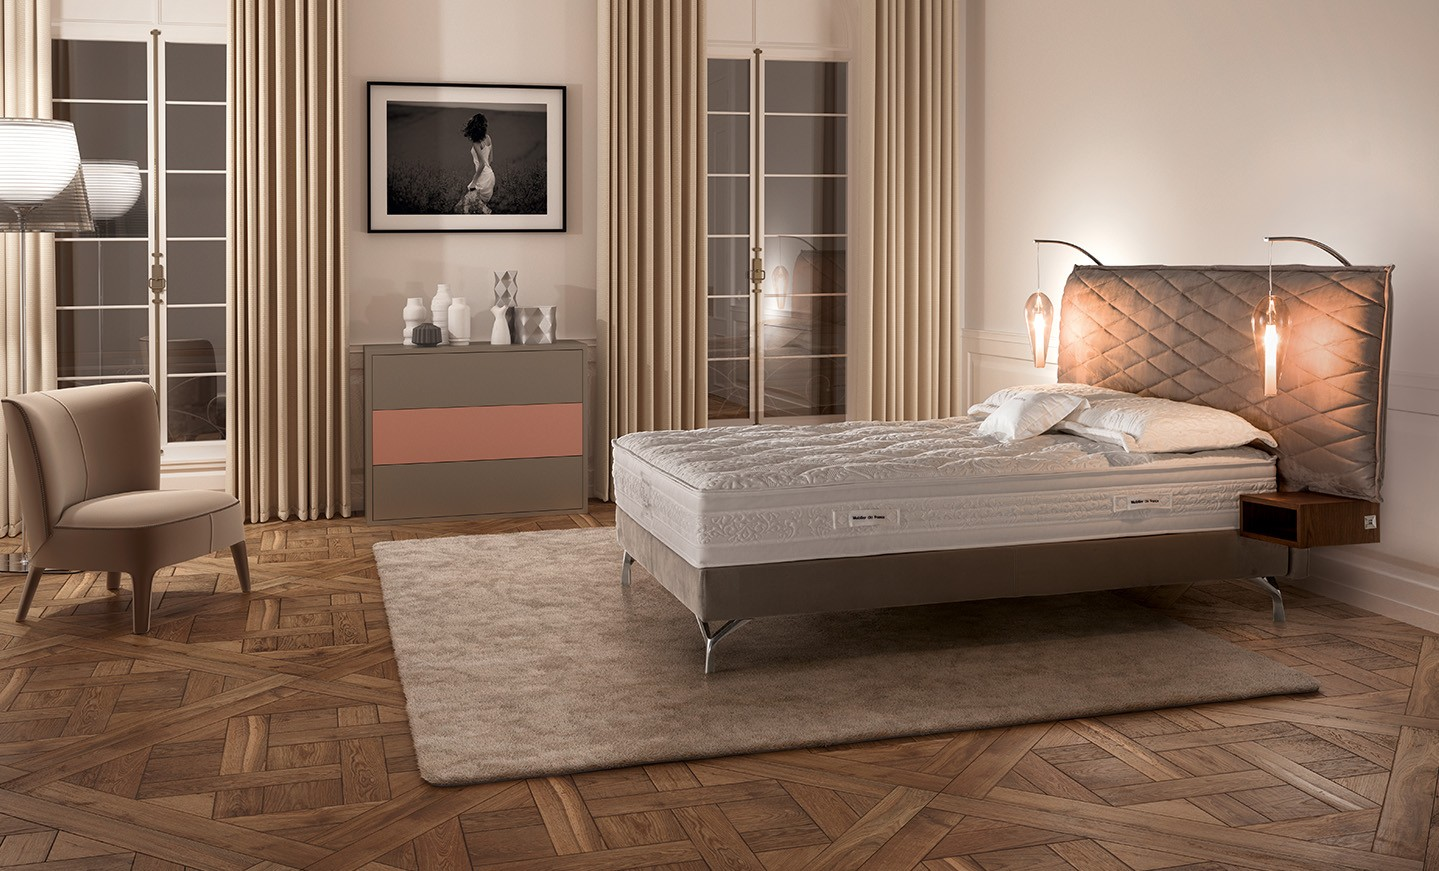 Mobilier France Mobilier De France Chambre A Coucher Davidreed Co